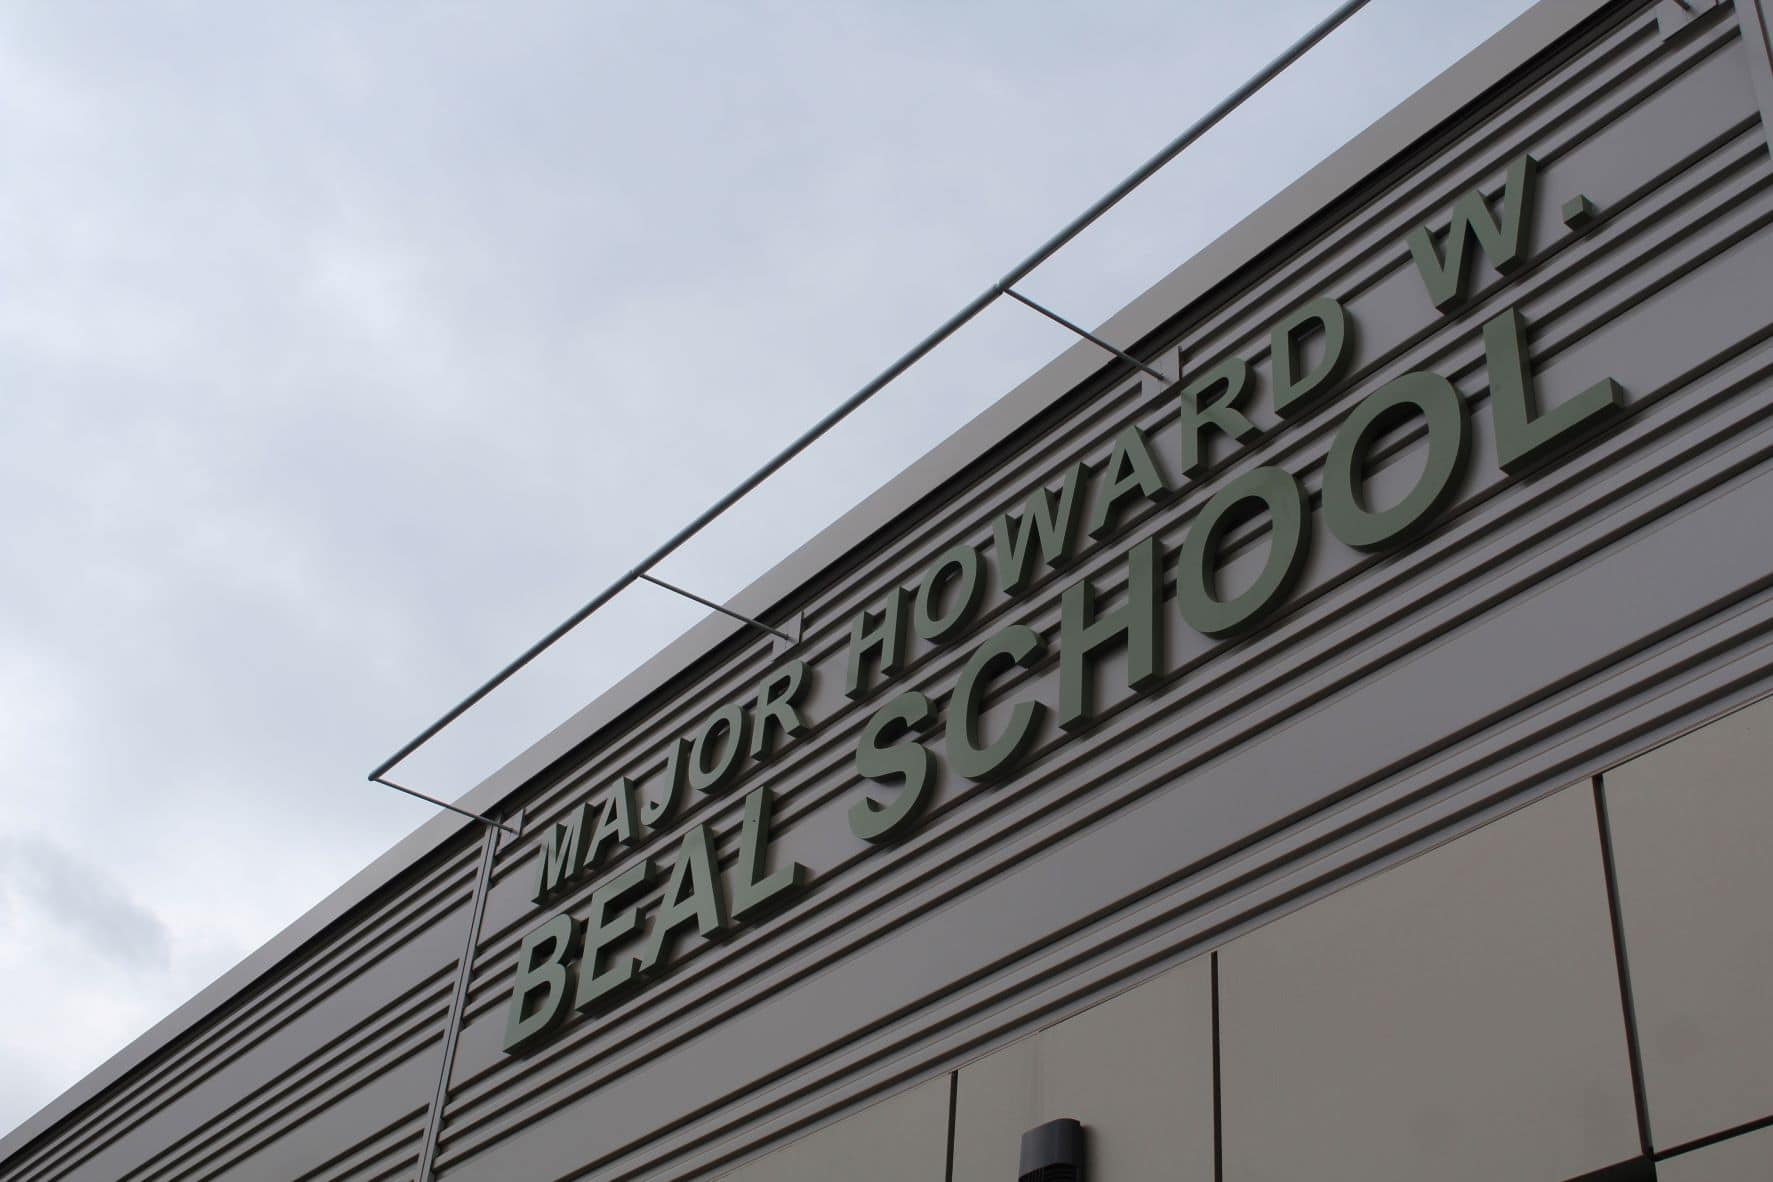 The new Beal school is located at 214 Lake St.